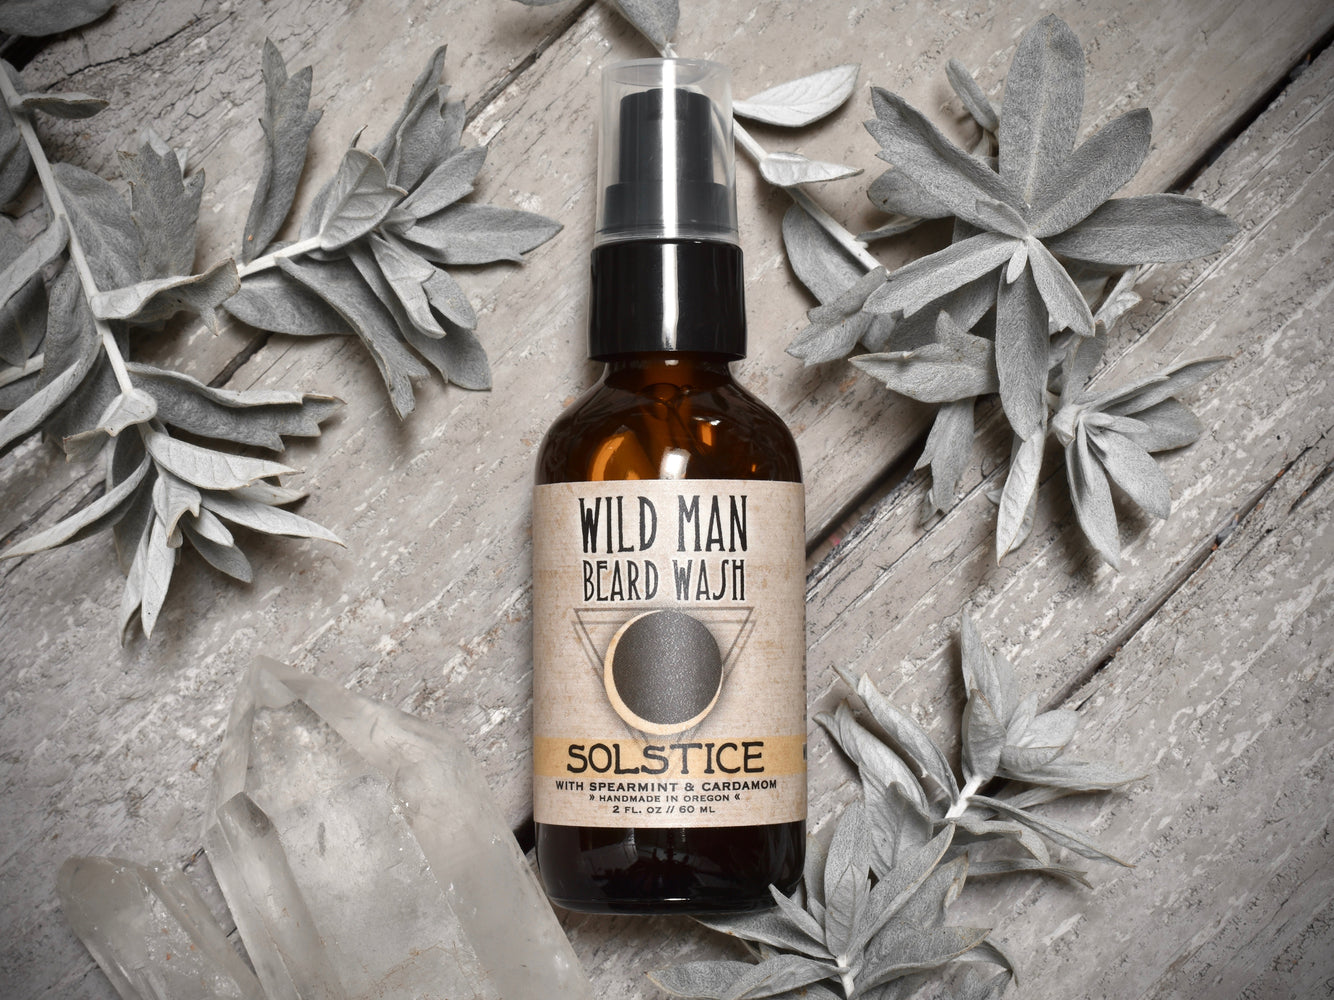 Wild Man Beard Wash - Solstice